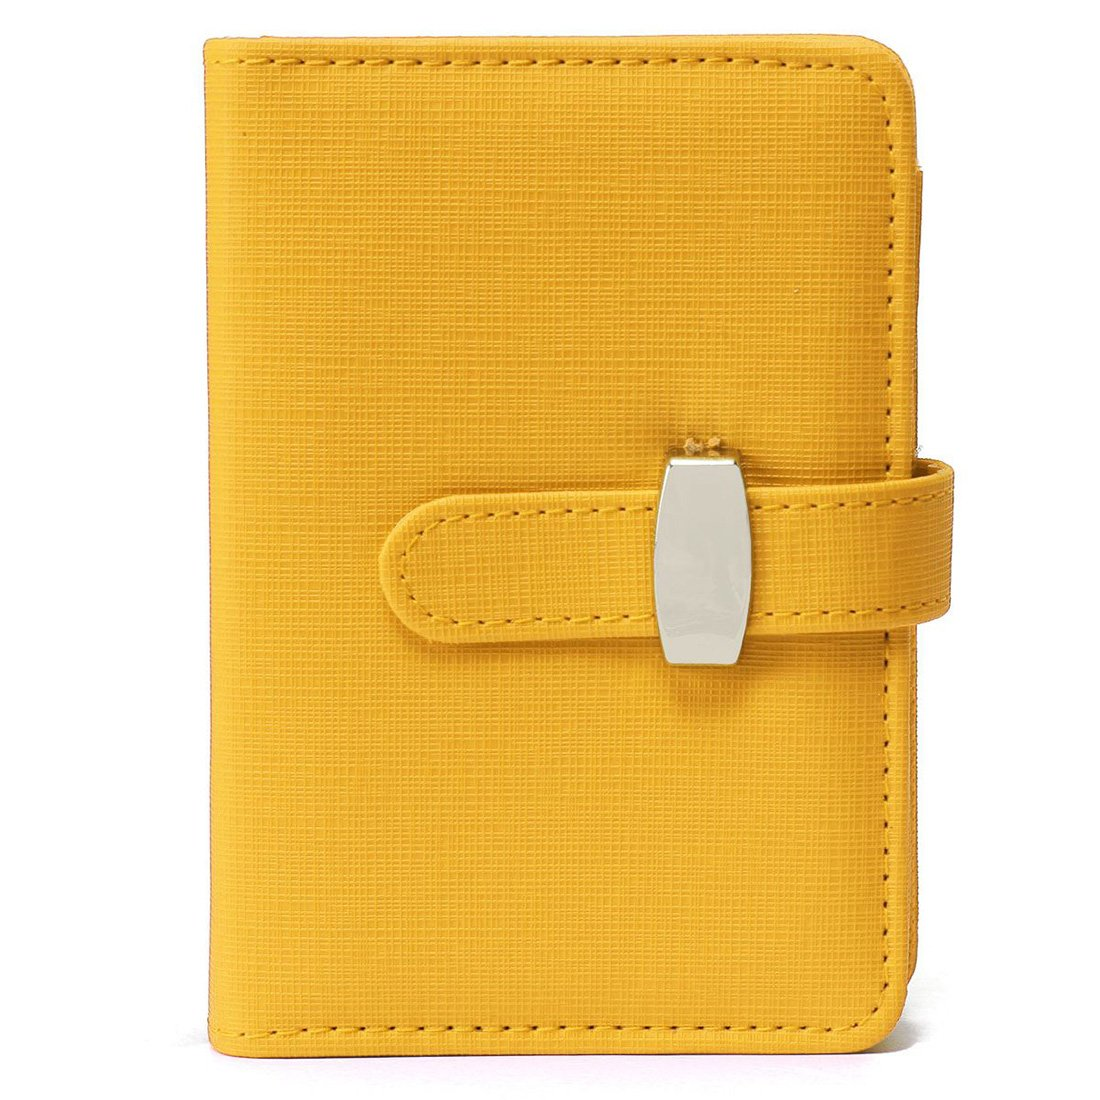 TOOGOO(R) Modern Design A6 Personal Organiser Planner PU Leather Cover Diary Notebook School Office Stationery£¨Yellow£